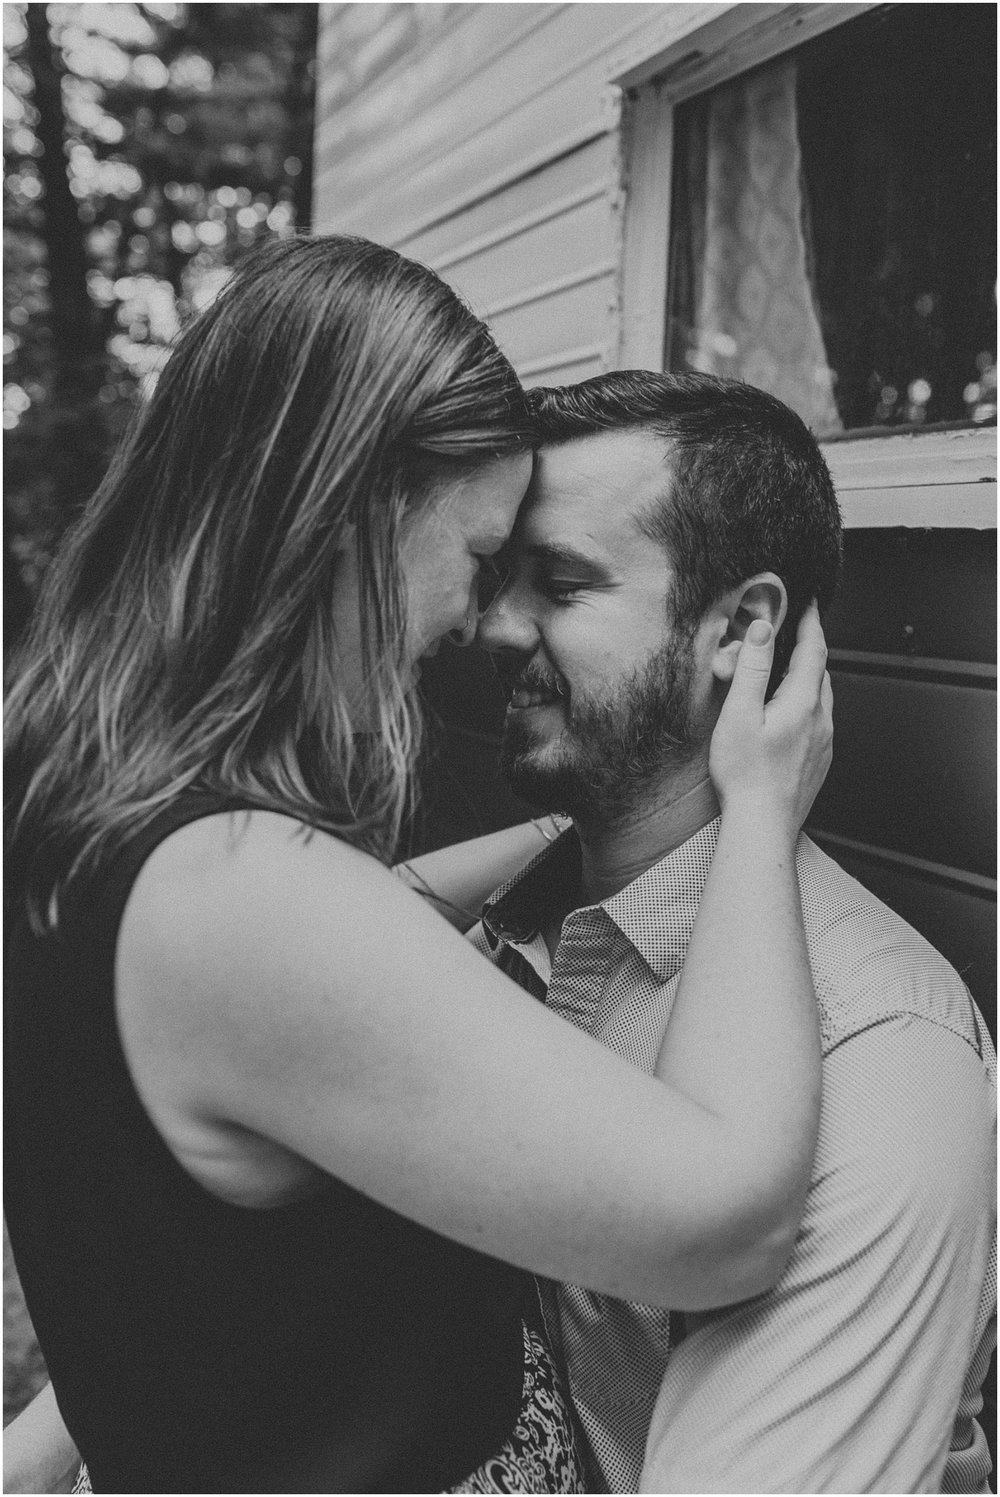 lifestyle-anniversary-engagement-photo session-rv-camping-road trip-vintage trailer-camping-outdoor photos_0244.jpg